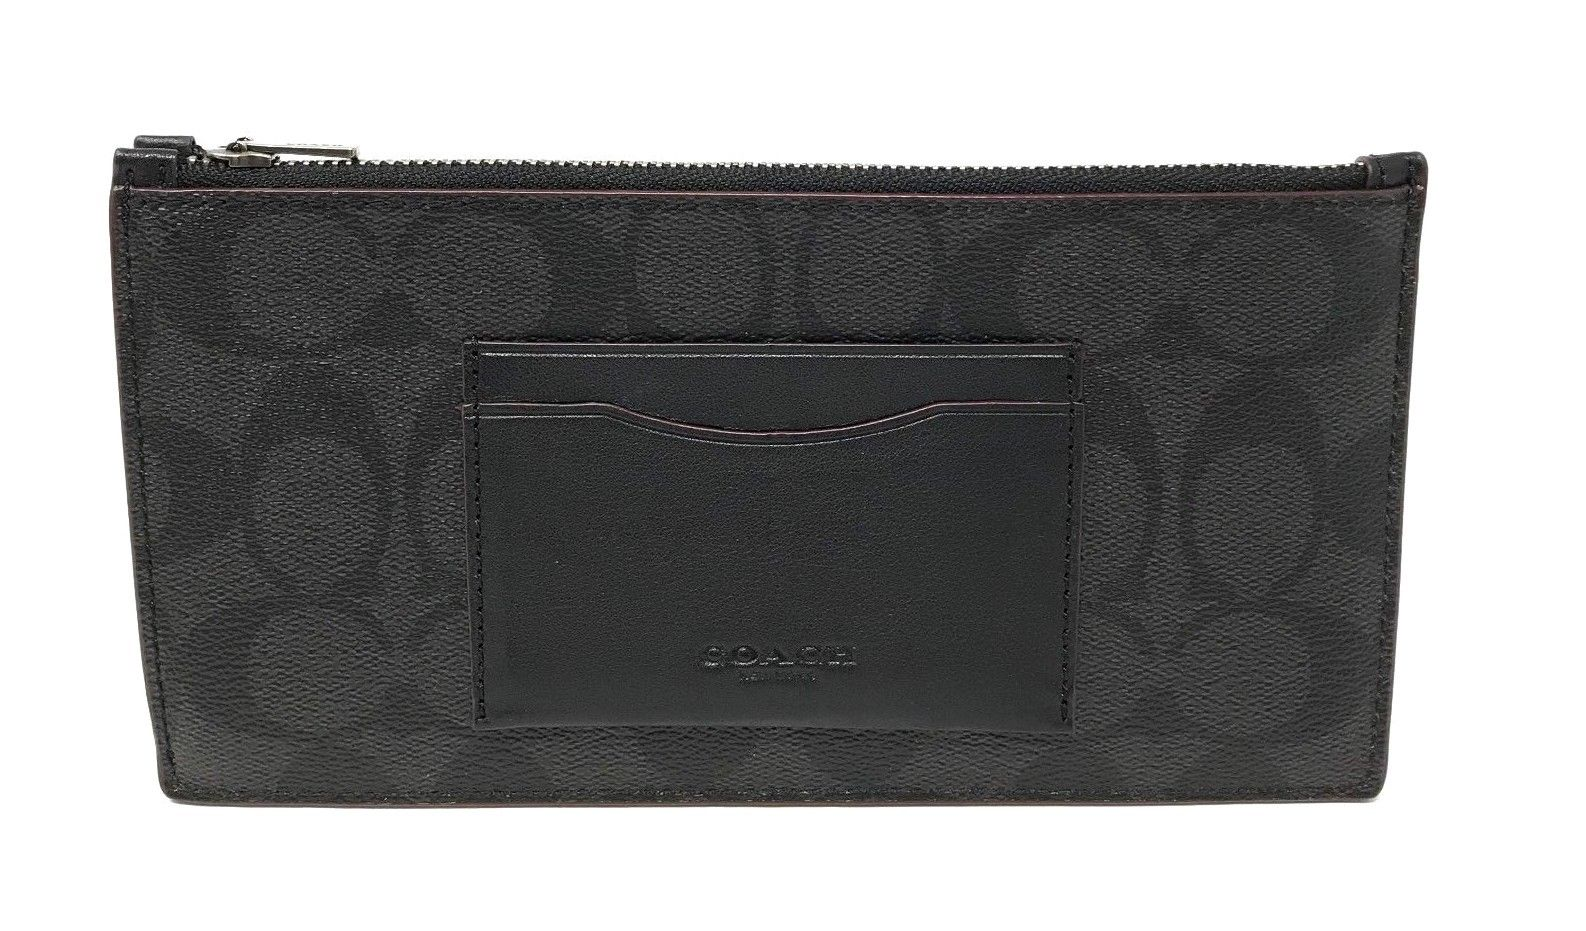 Coach Men's Zip Phone Wallet In Signature Canvas Black/Oxblood F41383 $175